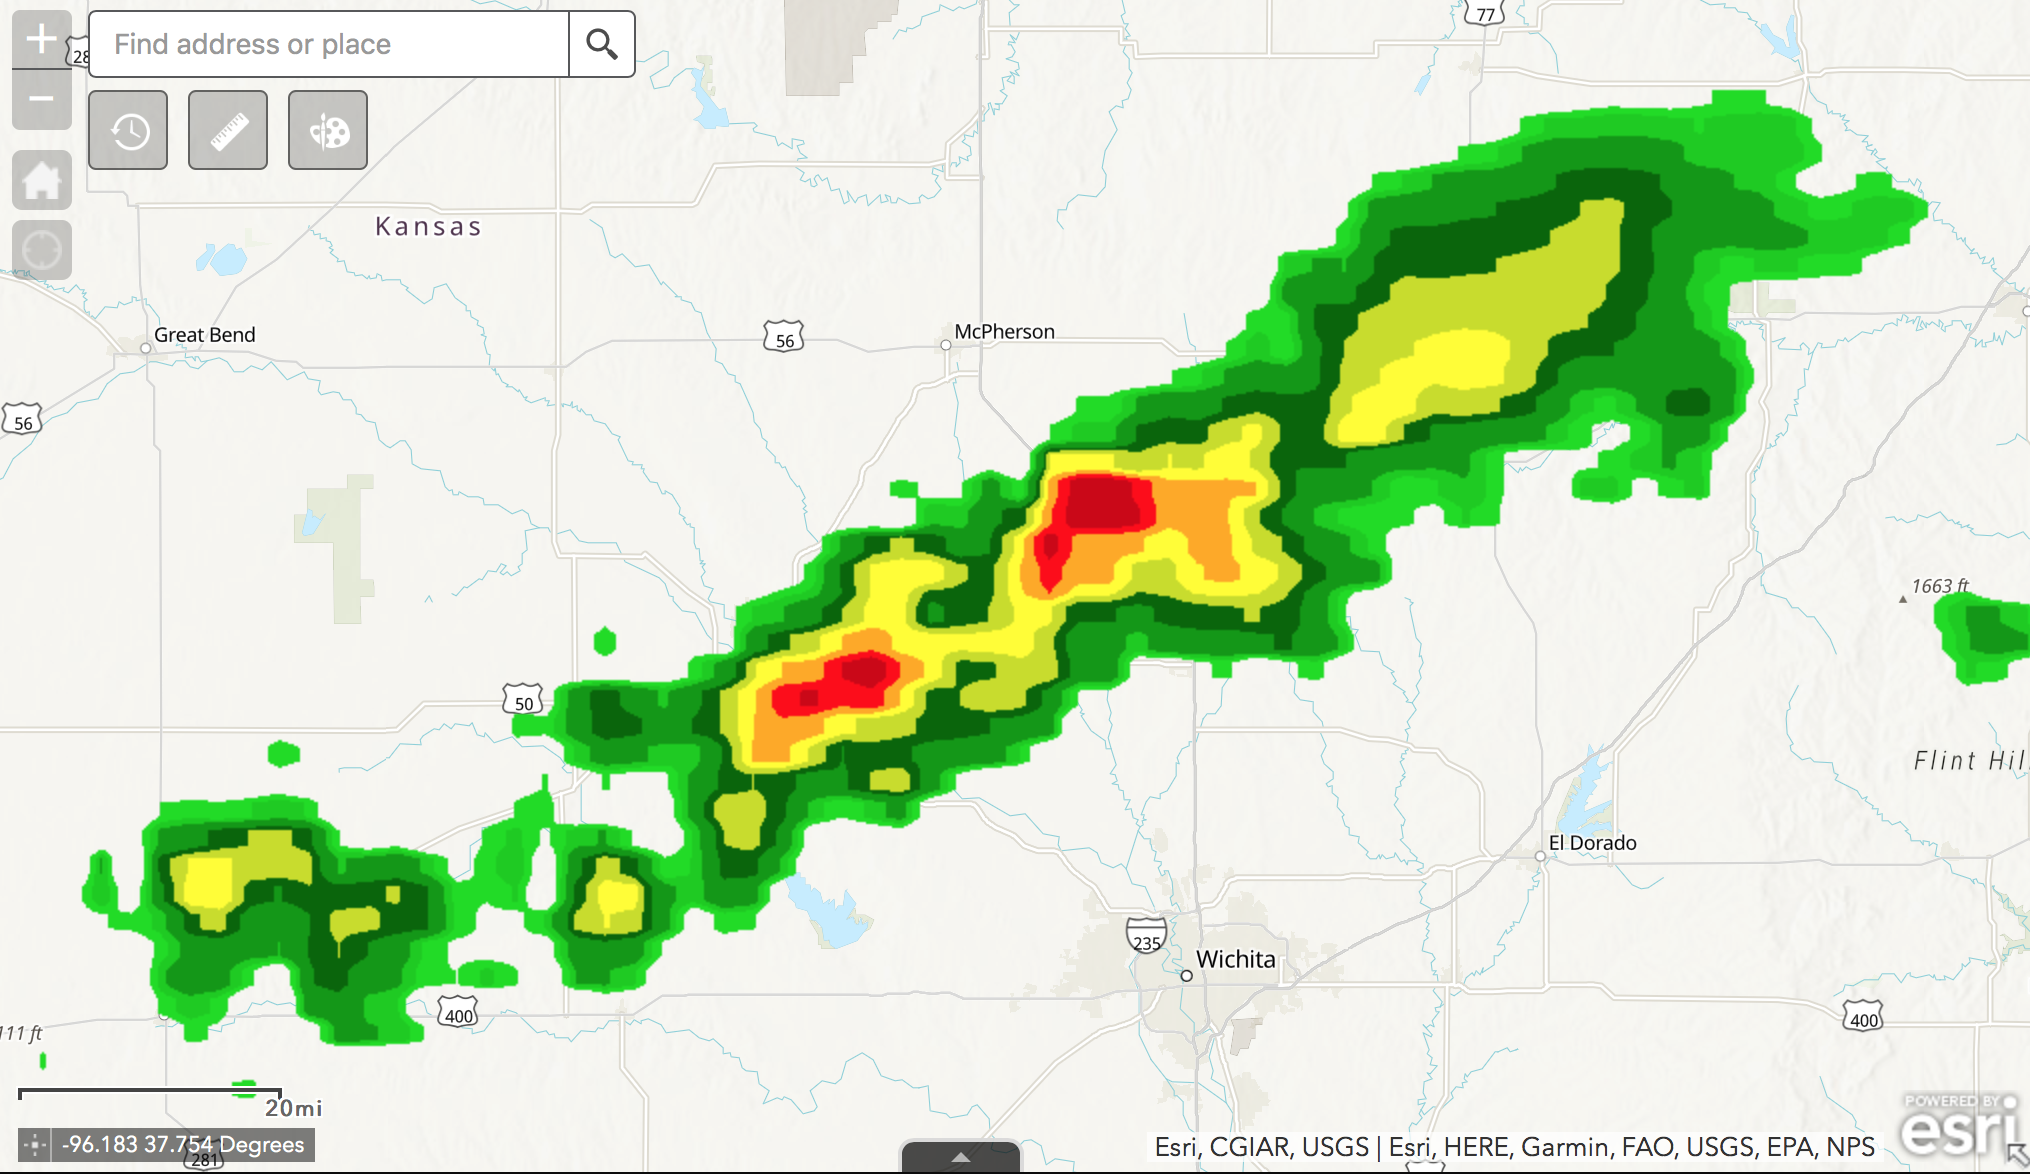 Modeling of Storms Using ArcGIS